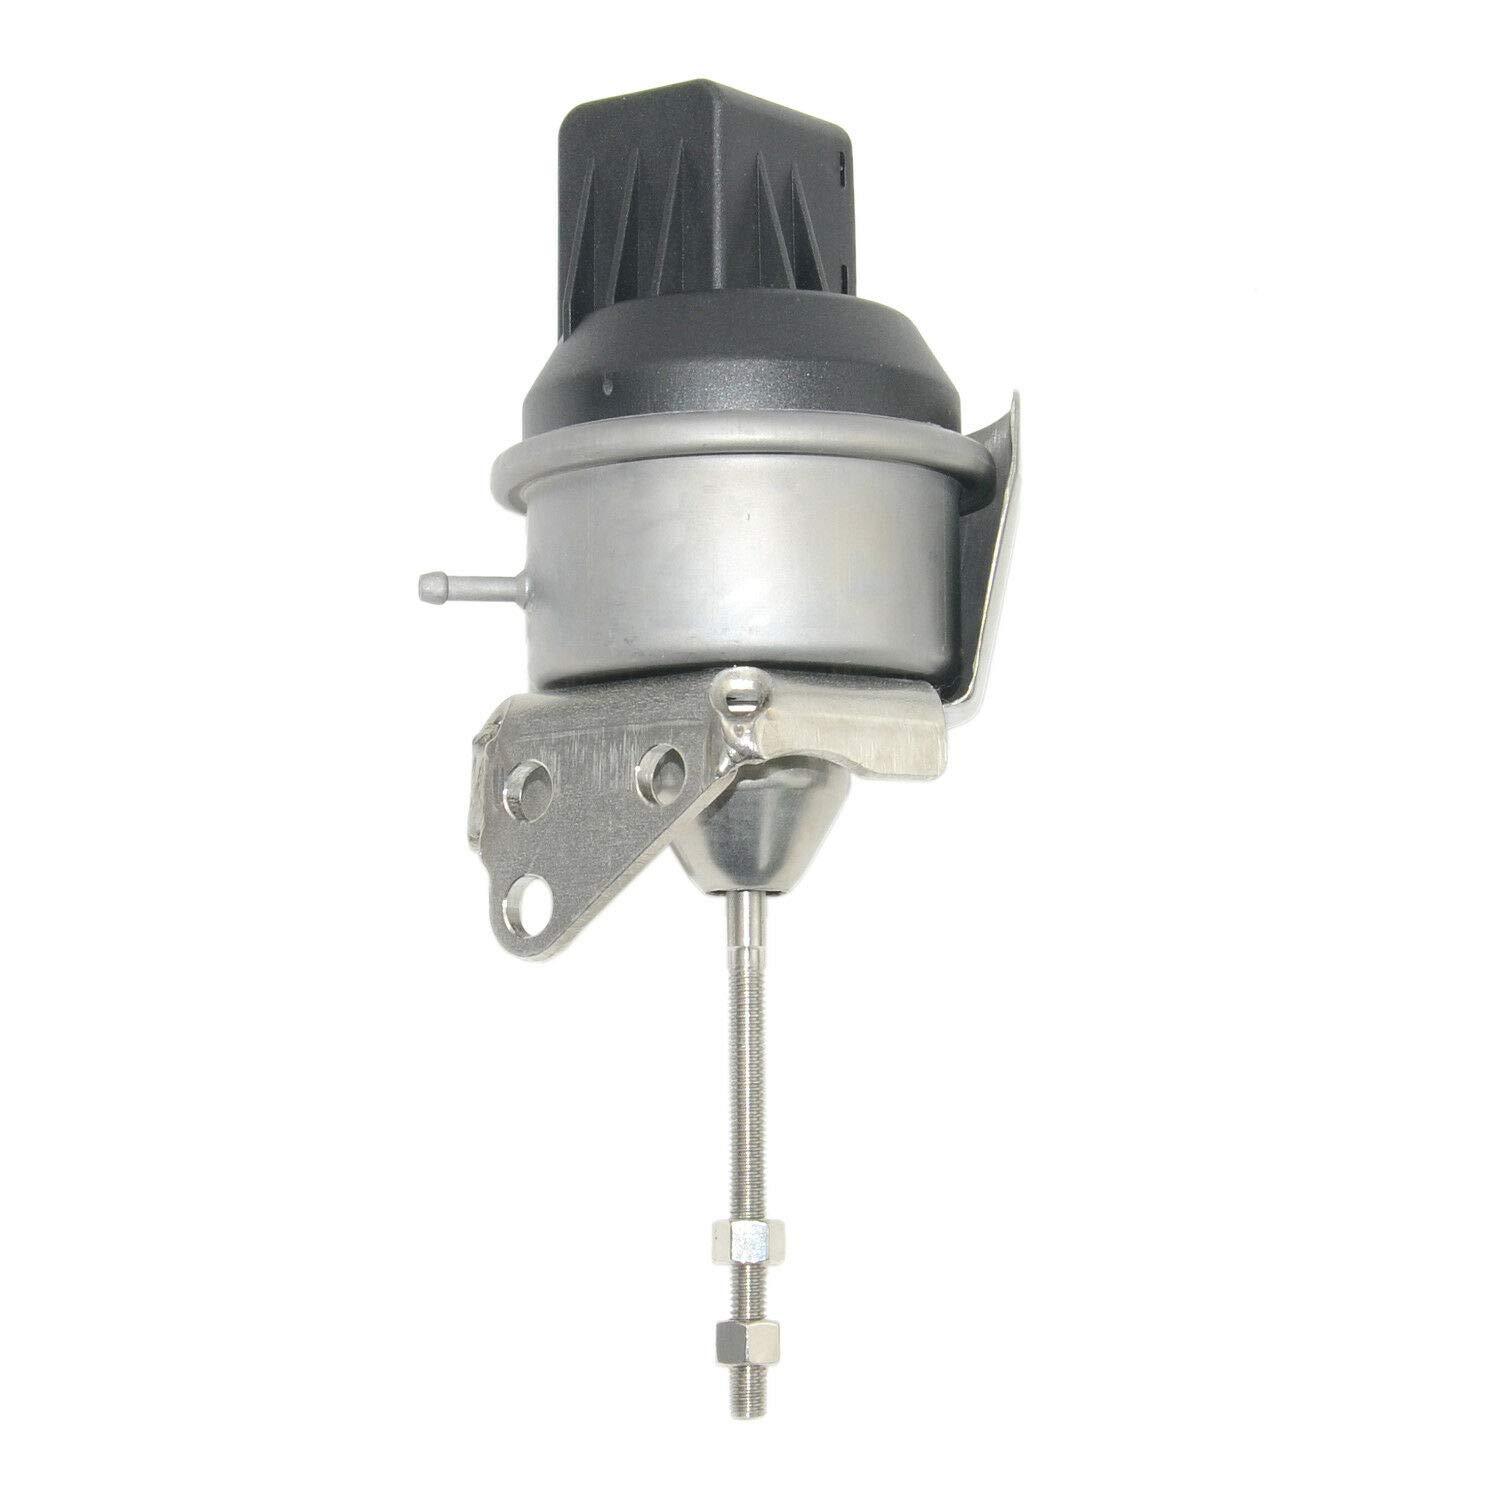 Air Supply Exhaust Turbocharger Actuator 54409880002//54409700002